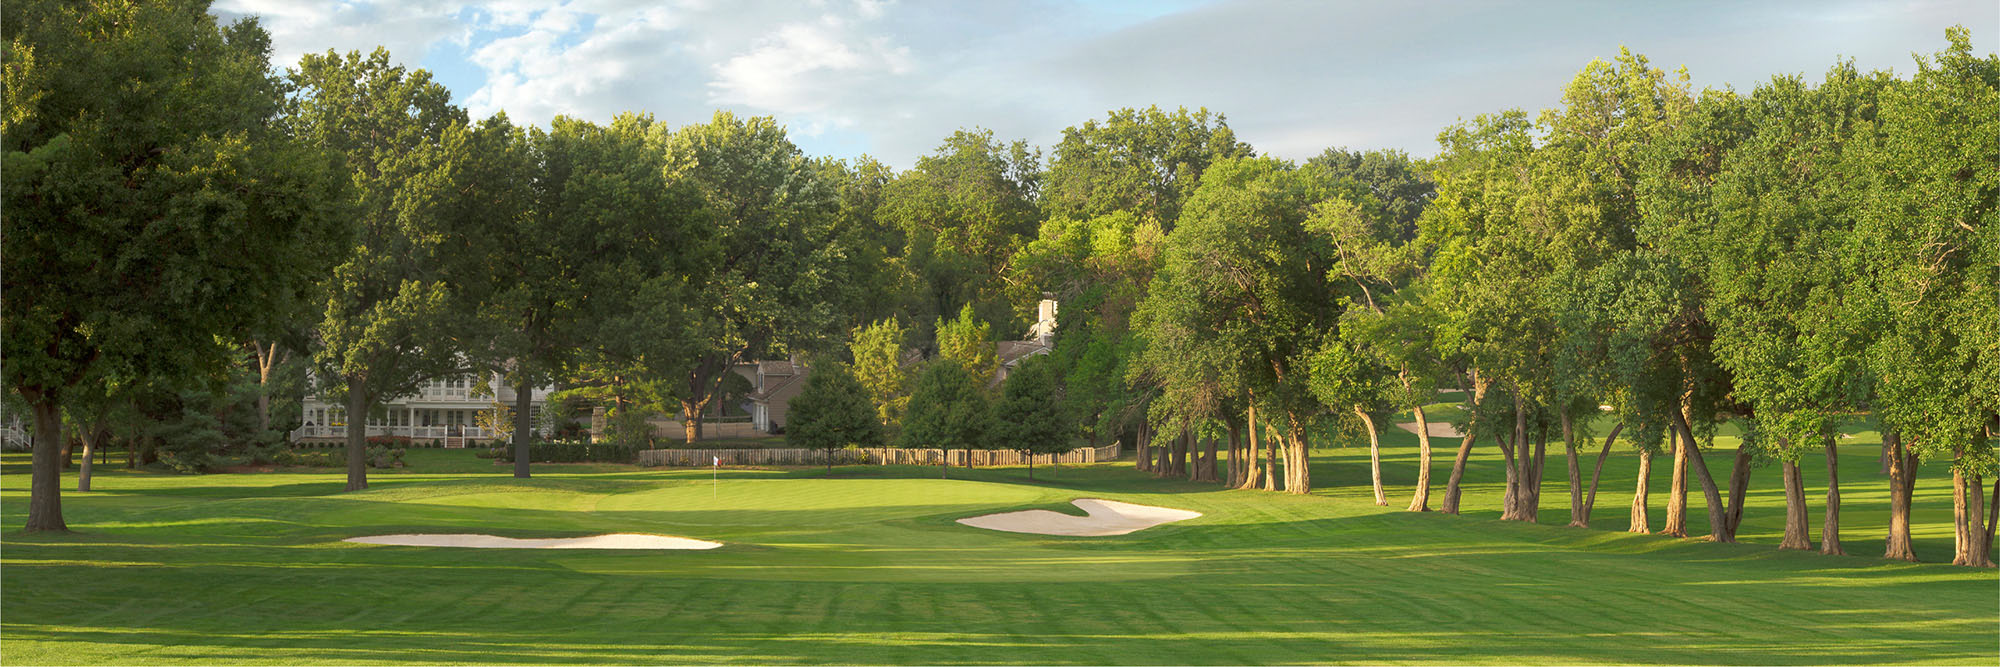 Golf Course Image - Indian Hills No. 17